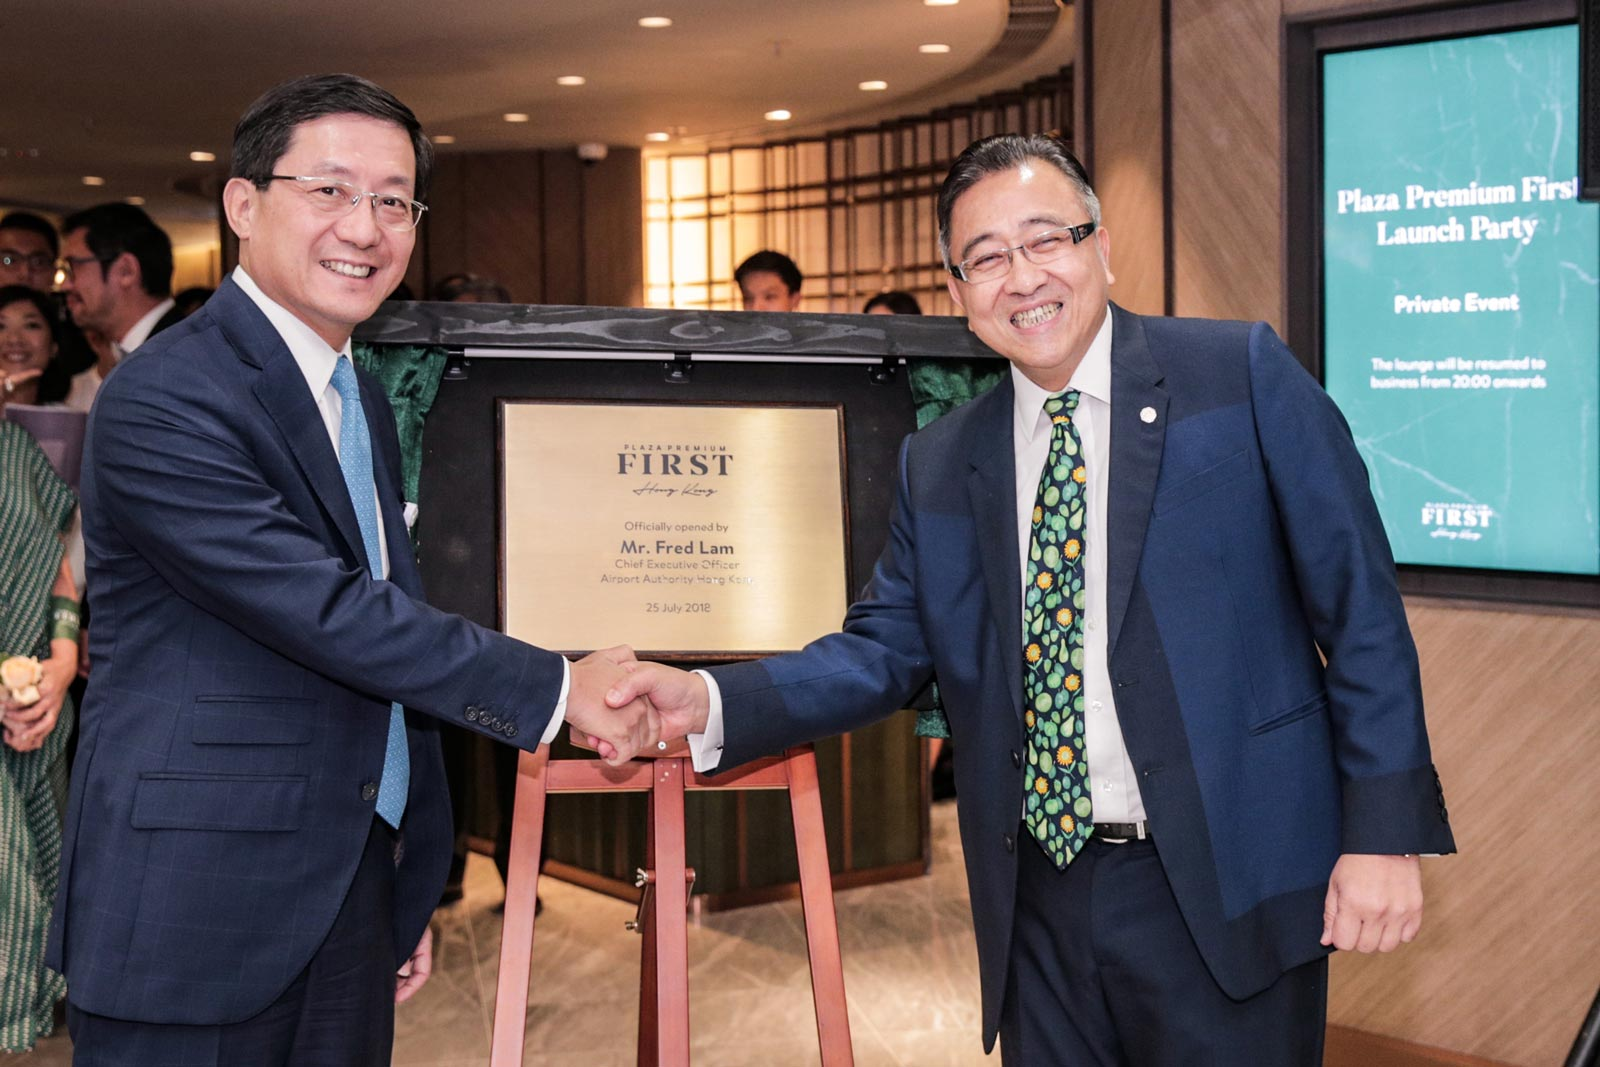 Plaque Reveal Ceremony conducted by Mr. Fred Lam, CEO of Hong Kong Airport Authority (L) and Mr. Song Hoi-see (R), Founder and CEO of Plaza Premium Group